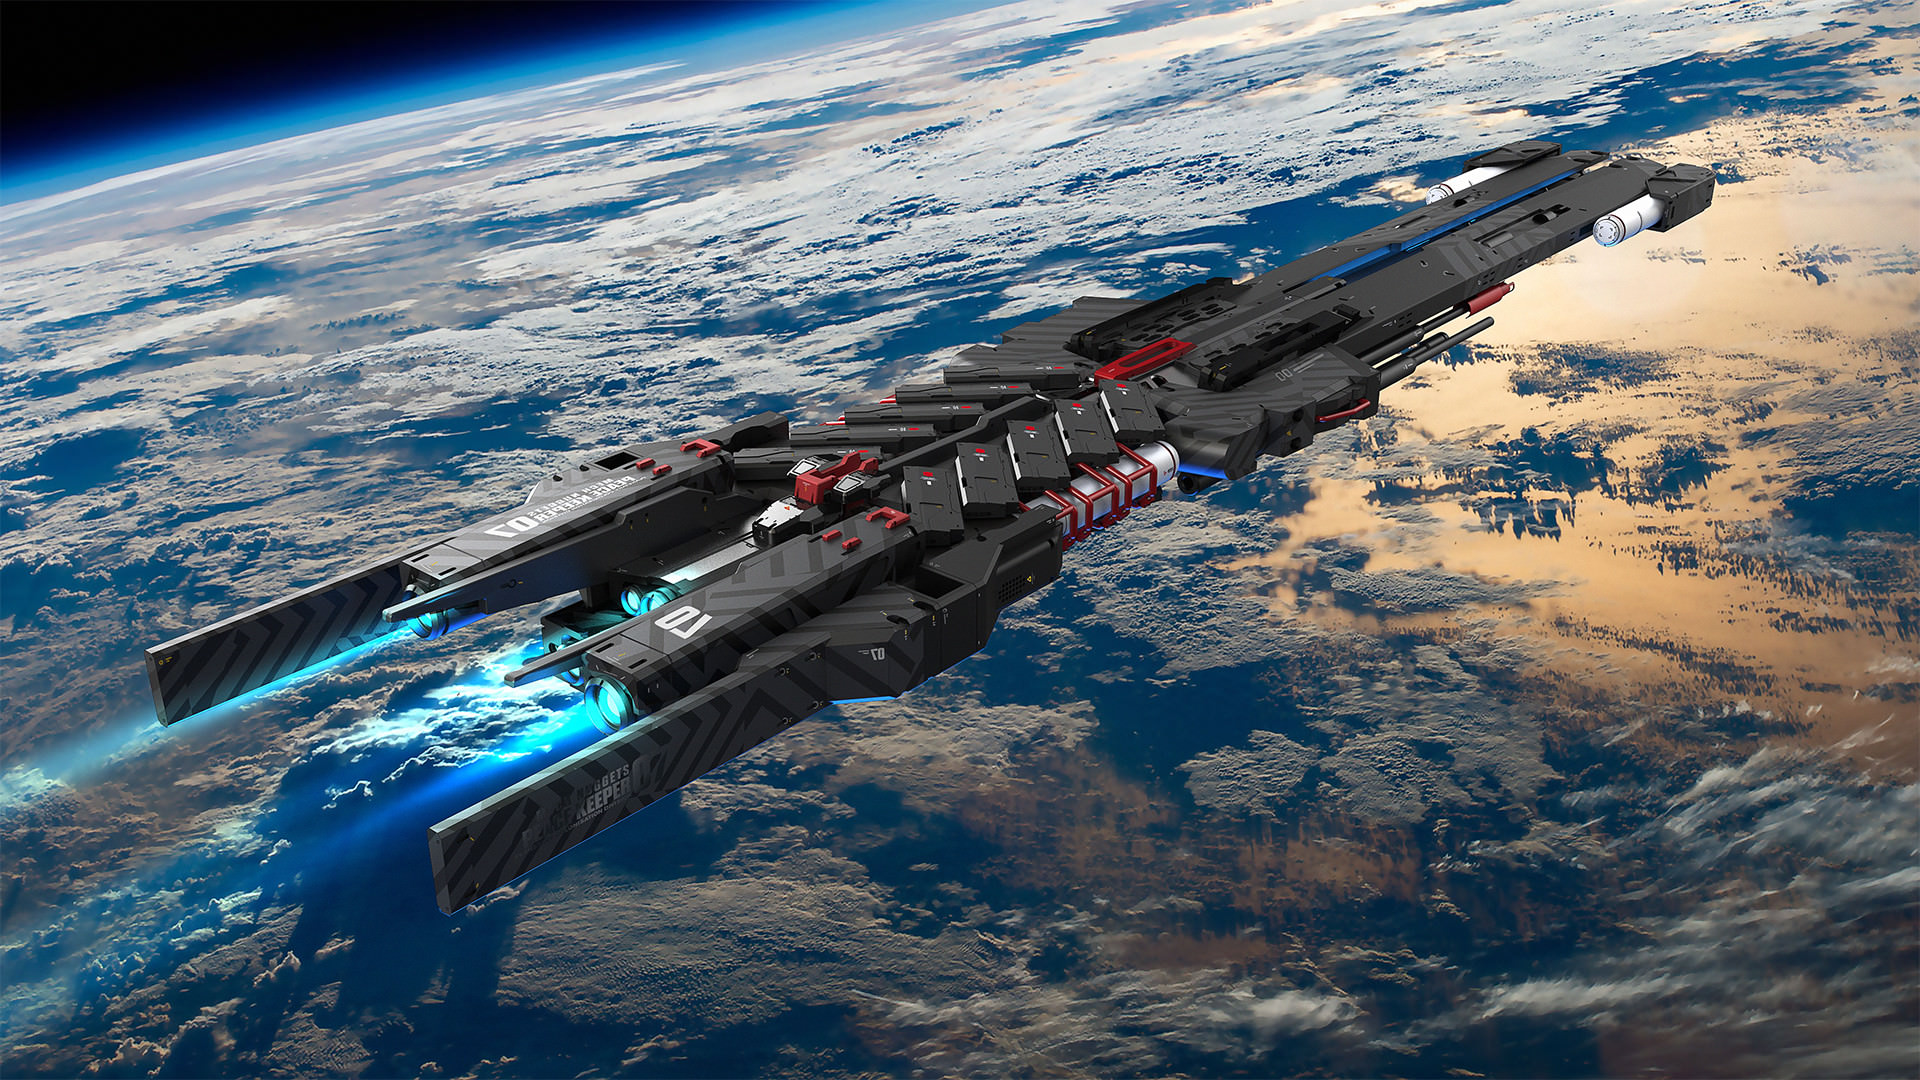 General 1920x1080 science fiction space spaceship